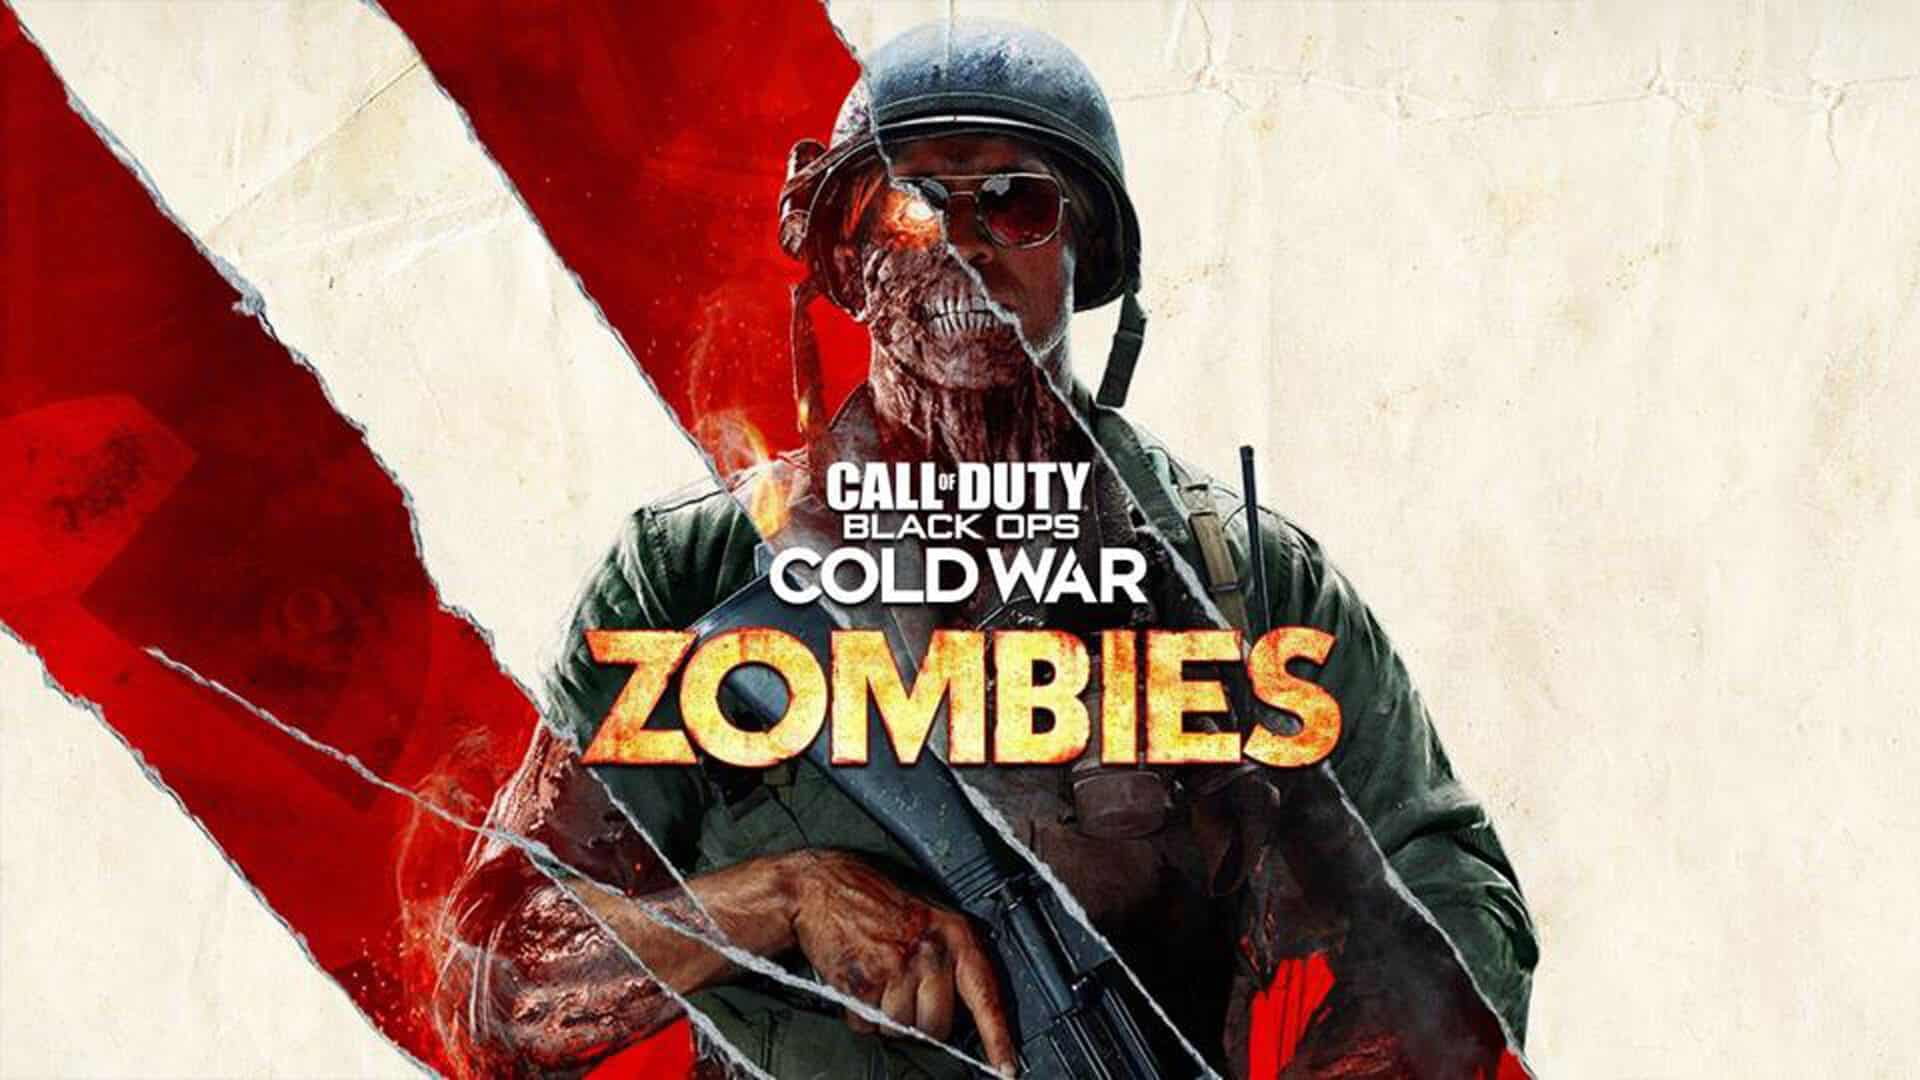 Call of Duty: Black Ops Cold War Zombie Mode